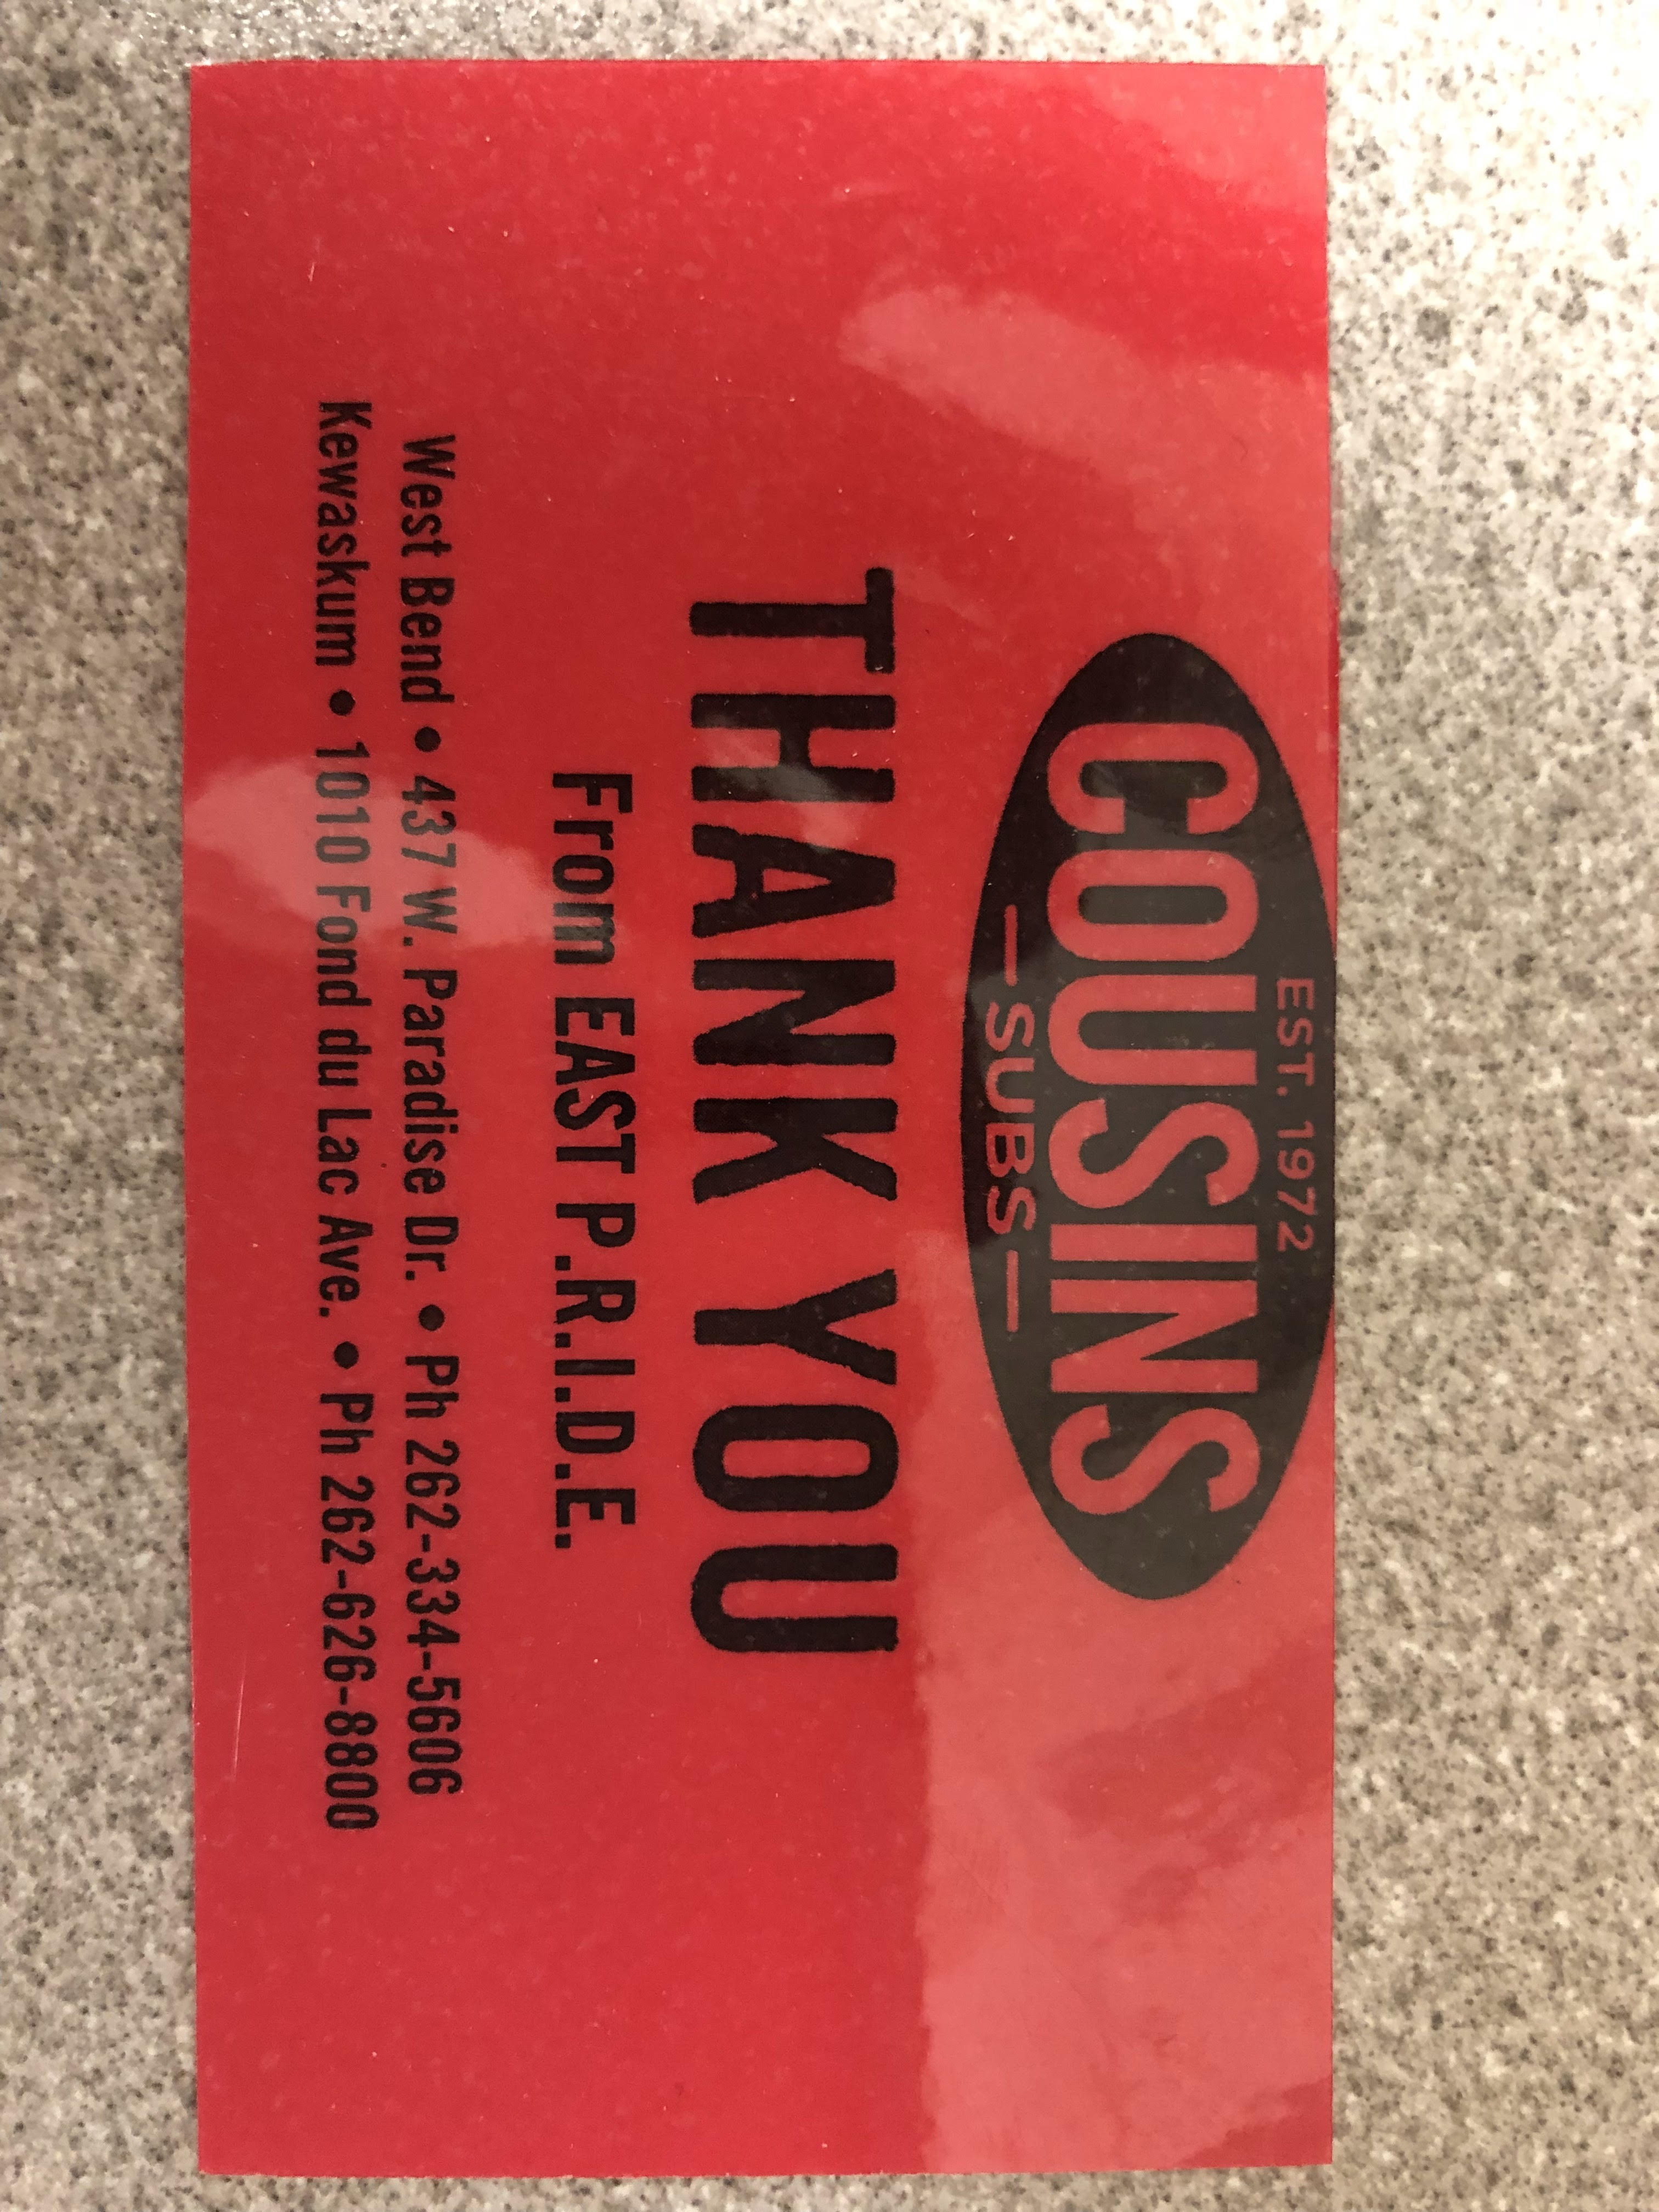 EAST ATHLETICS SELLING COUSINS SUBS CARDS